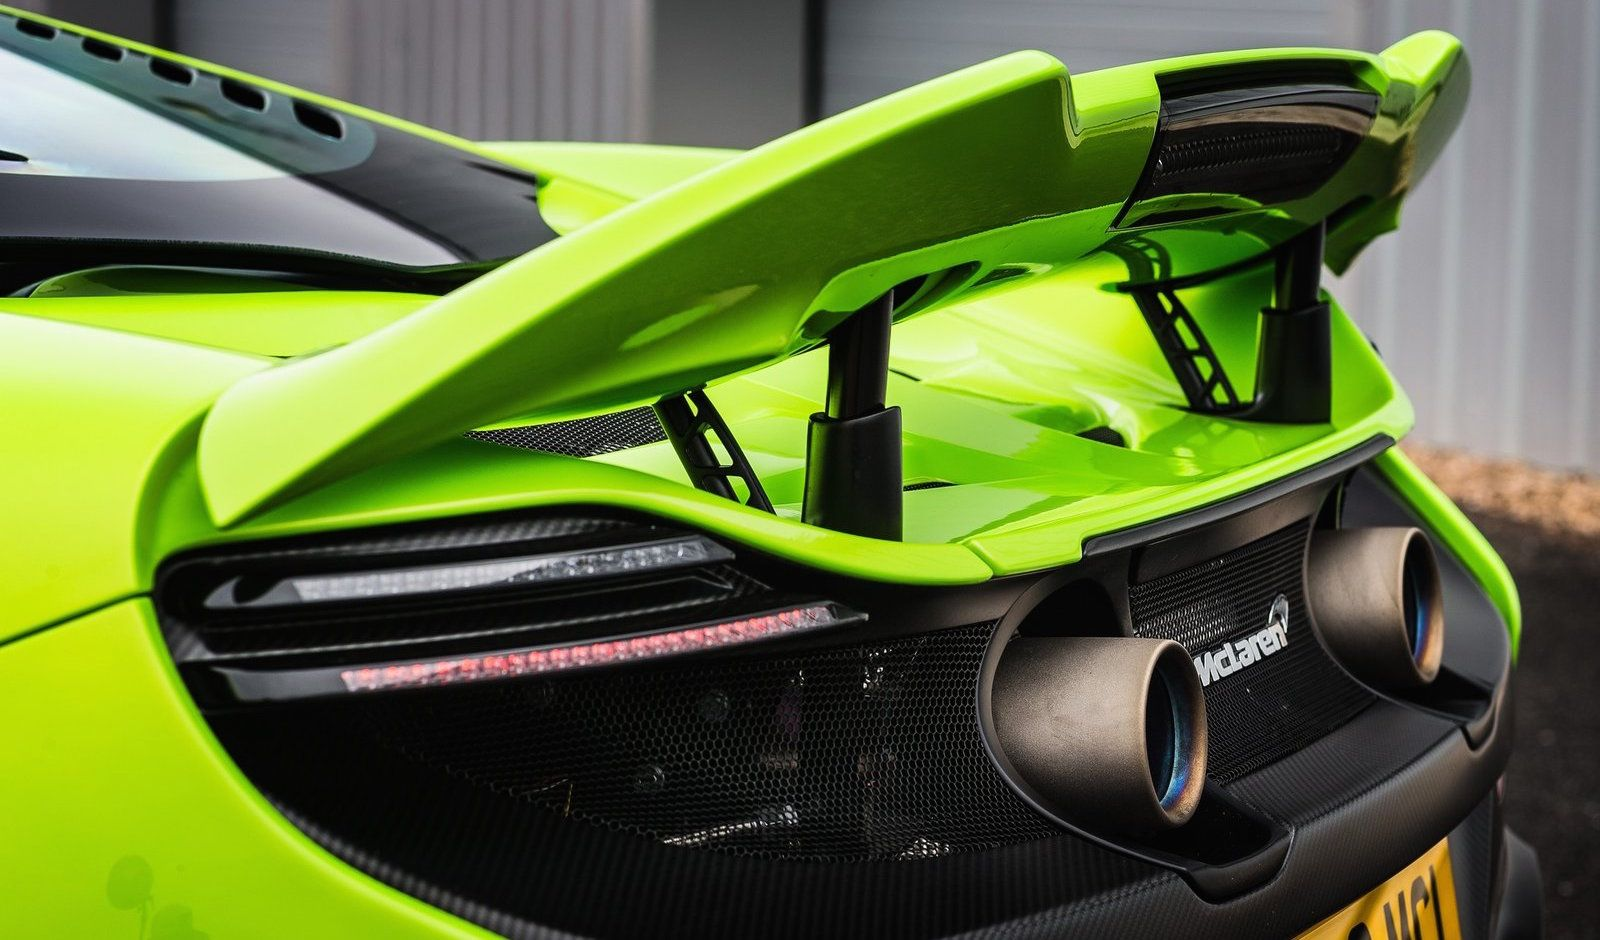 17 Road Cars With the Cool Racing Aerodynamics